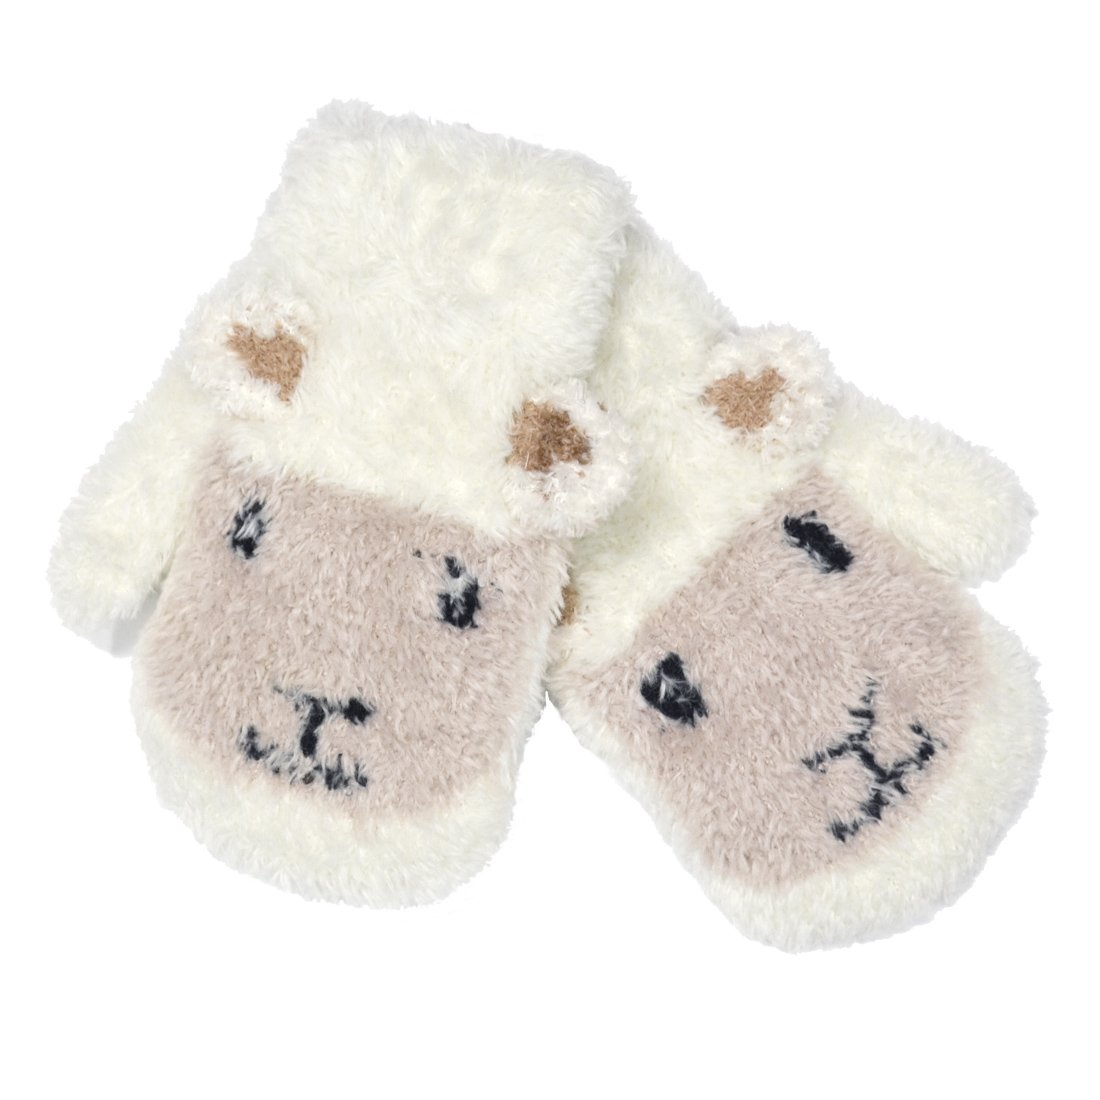 Patrick Francis Ireland Kids Woolly Sheep Face Mittens, Cream Colour PF7383